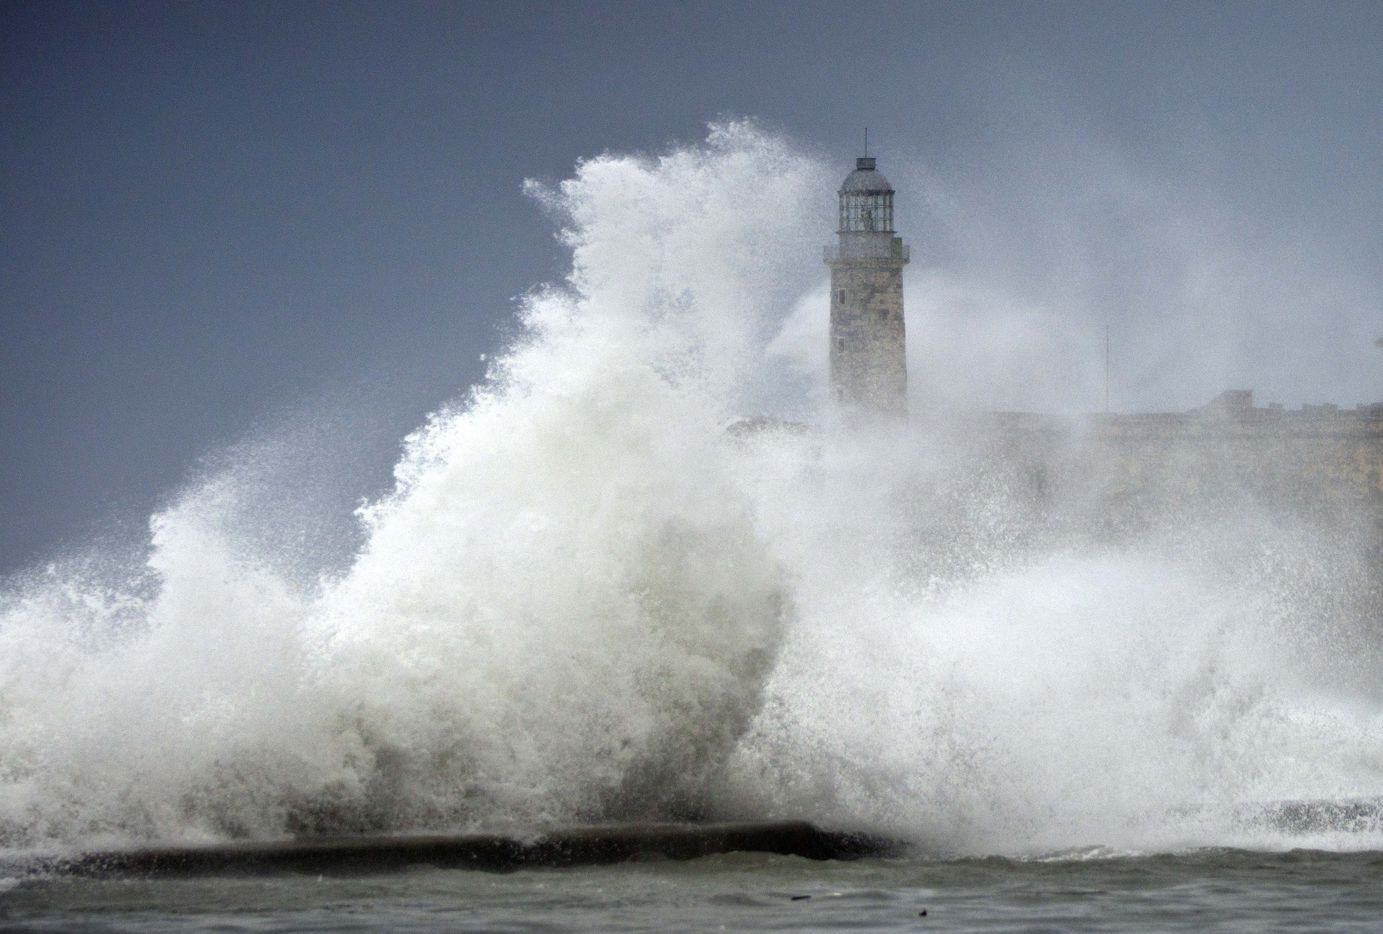 Waves crash into El Morro after the passing of Hurricane Irma, in Havana, Cuba, Sunday, Sept. 10, 2017. The powerful storm ripped roofs off houses, collapsed buildings and flooded hundreds of miles of coastline after cutting a trail of destruction across the Caribbean.There were no immediate reports of deaths in Cuba, a country that prides itself on its disaster preparedness, but authorities were trying to restore power and clear roads.